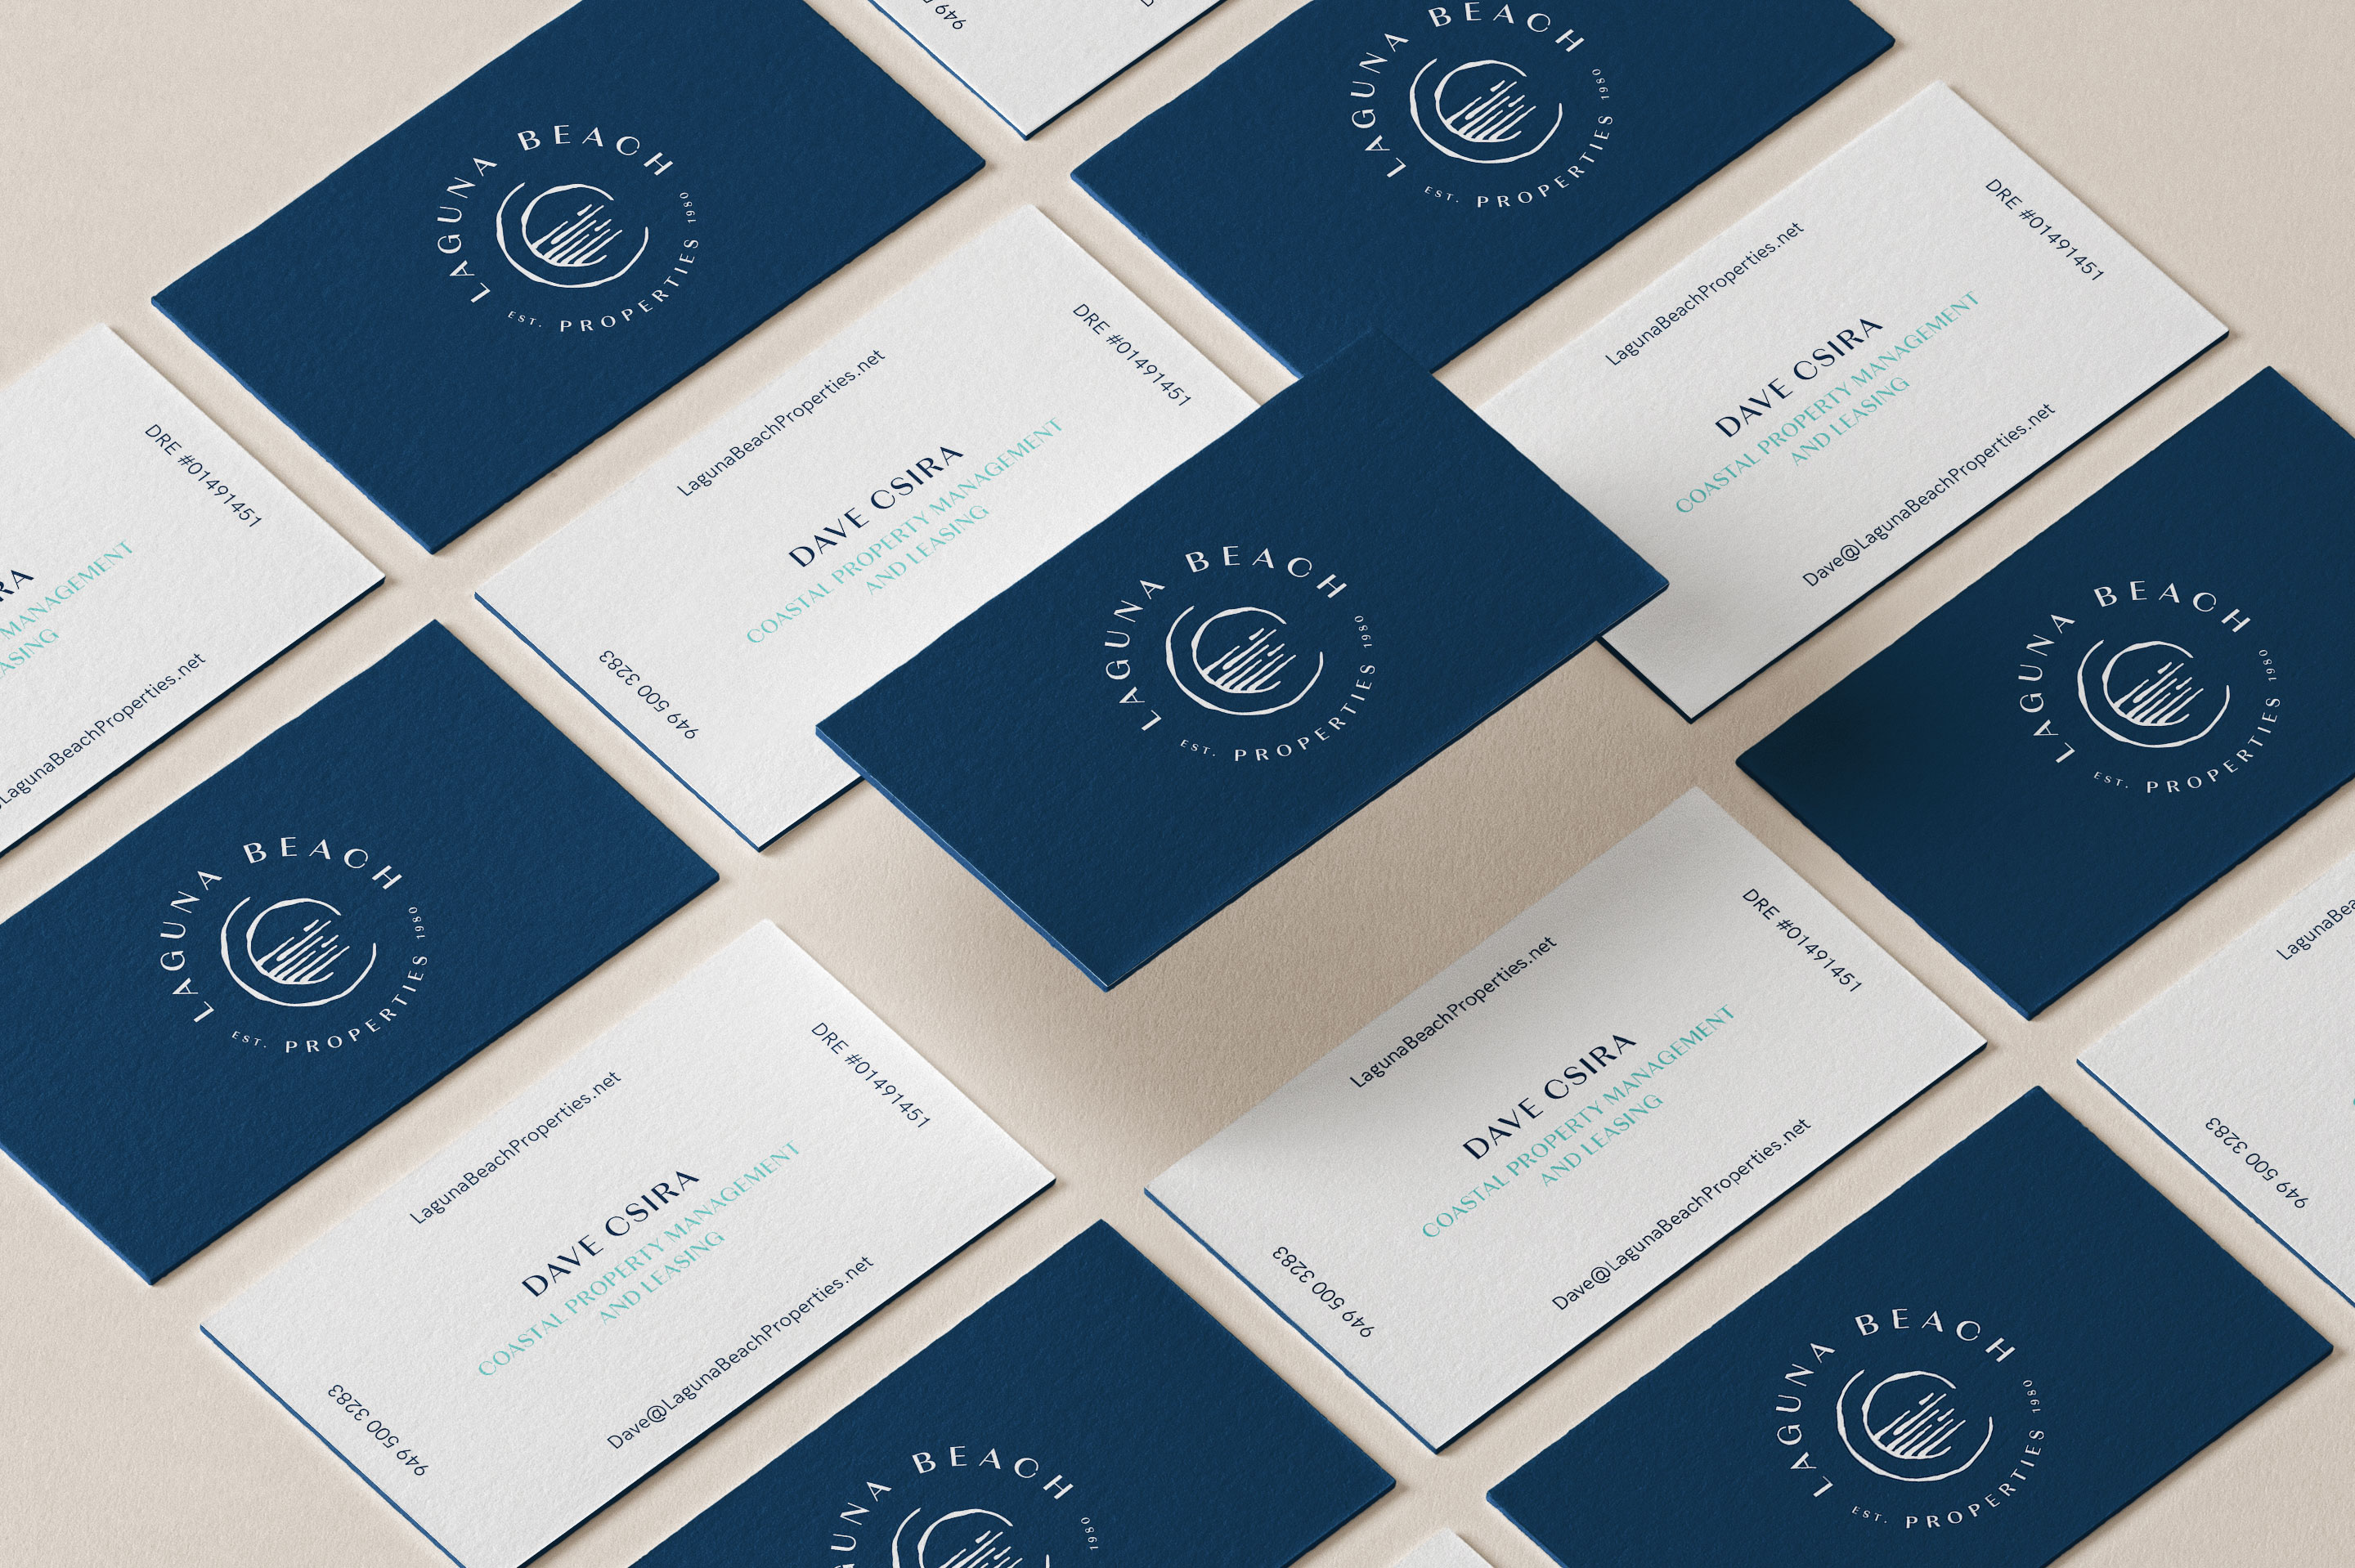 Business cards, Laguna beach properties, property, brand collateral, brand stationery